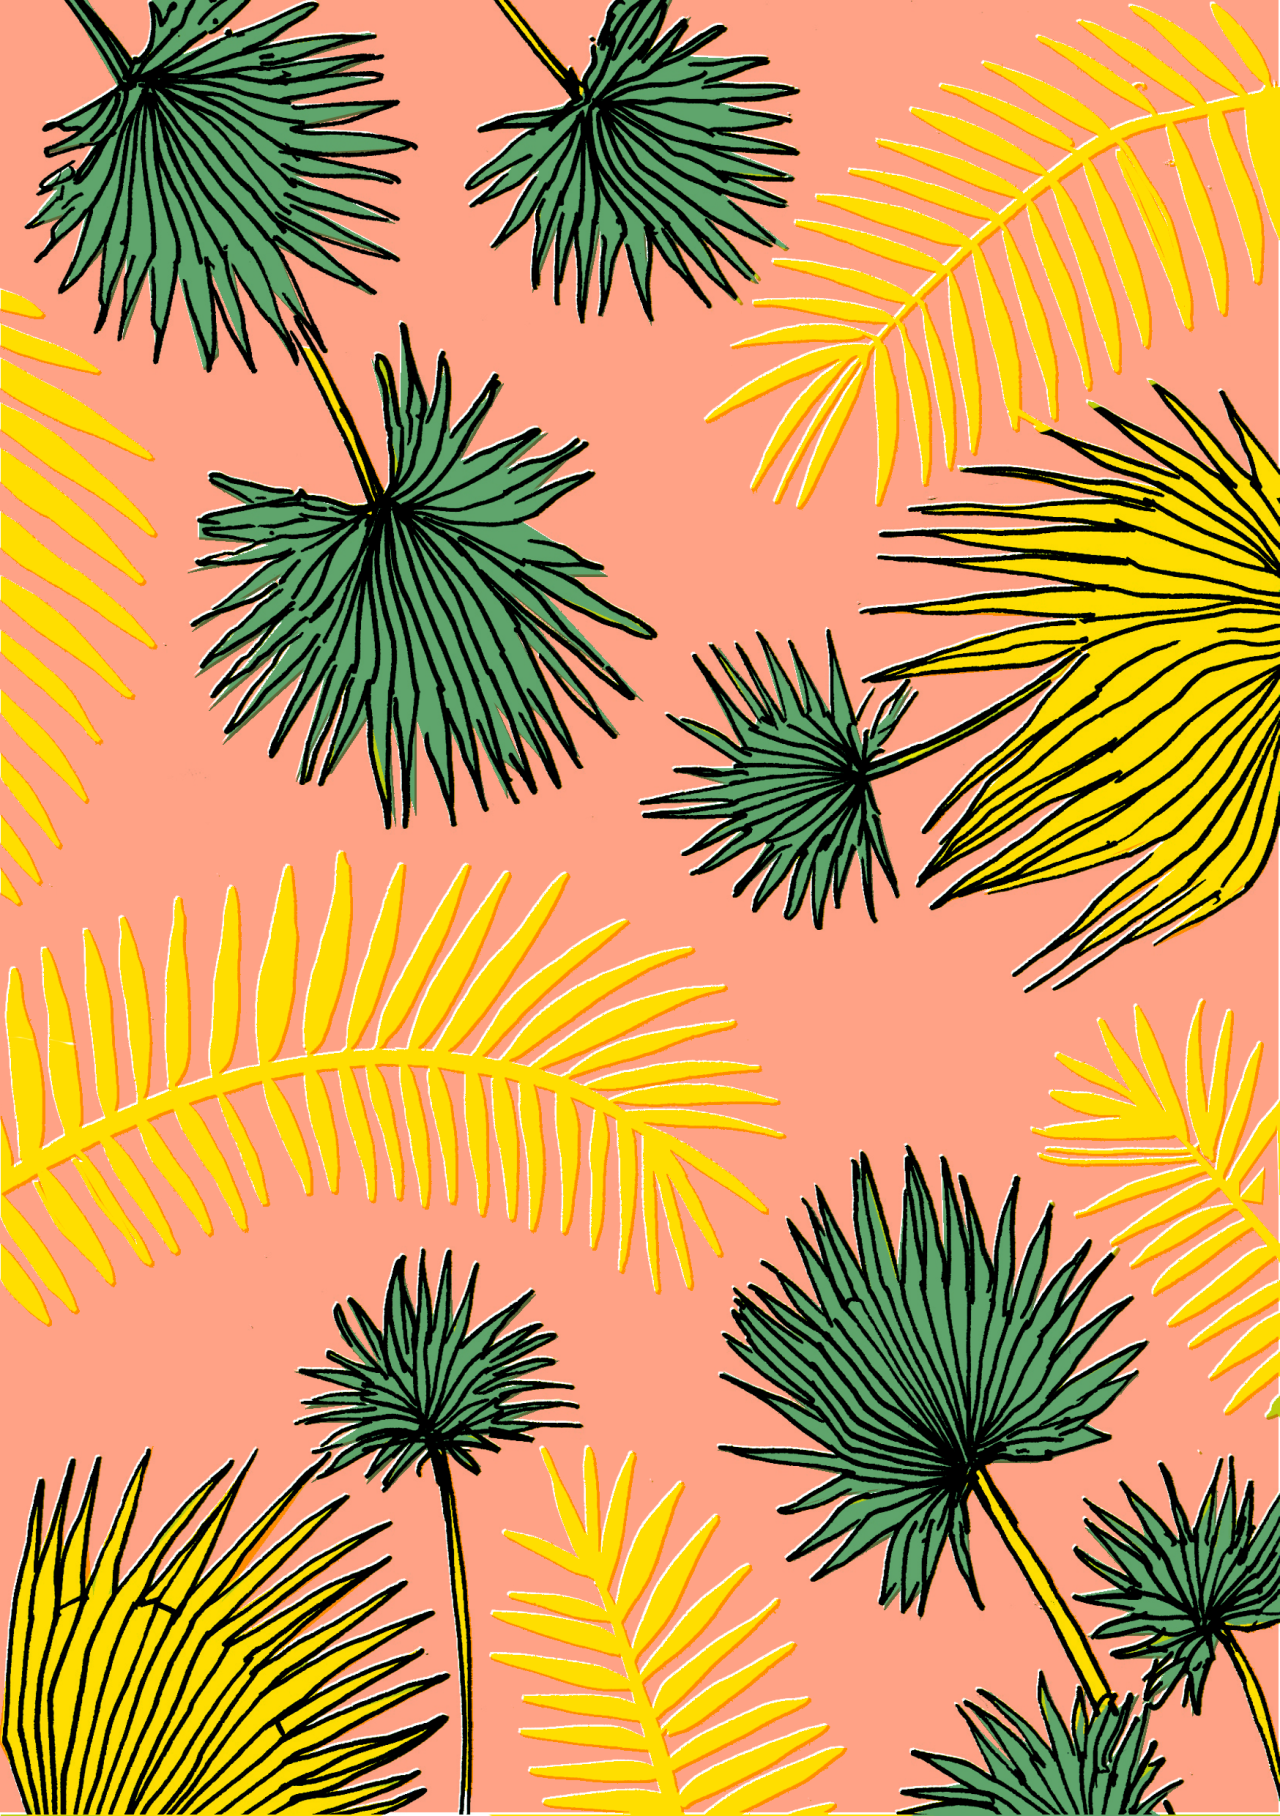 MINTY WARES | Playful graphic print and pattern design. Palm leaves on pink. Elena Boils